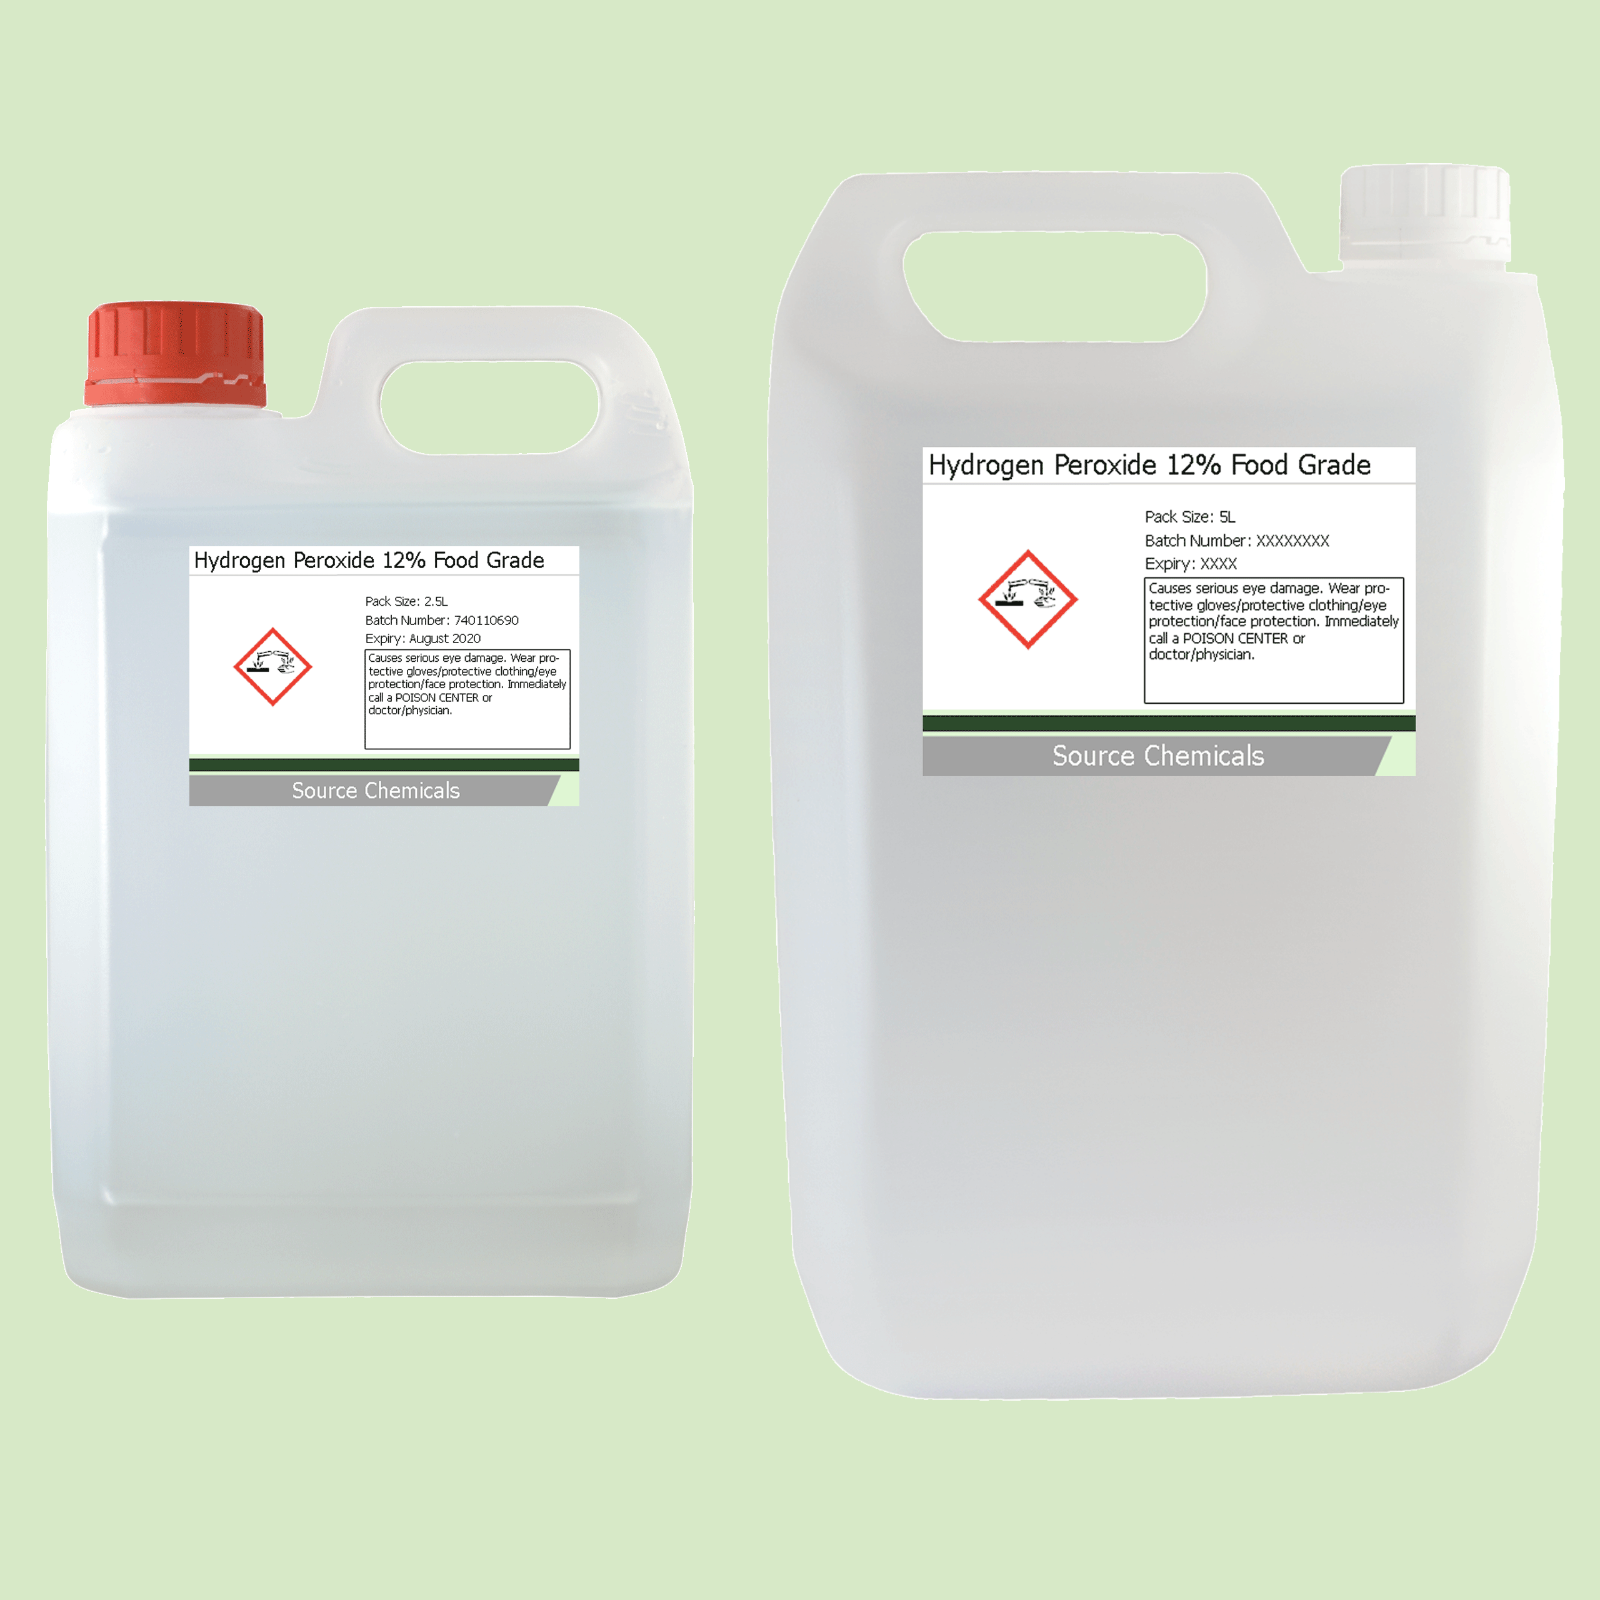 Details about Hydrogen Peroxide 12% Food Grade H2O2 2 5L to 40L